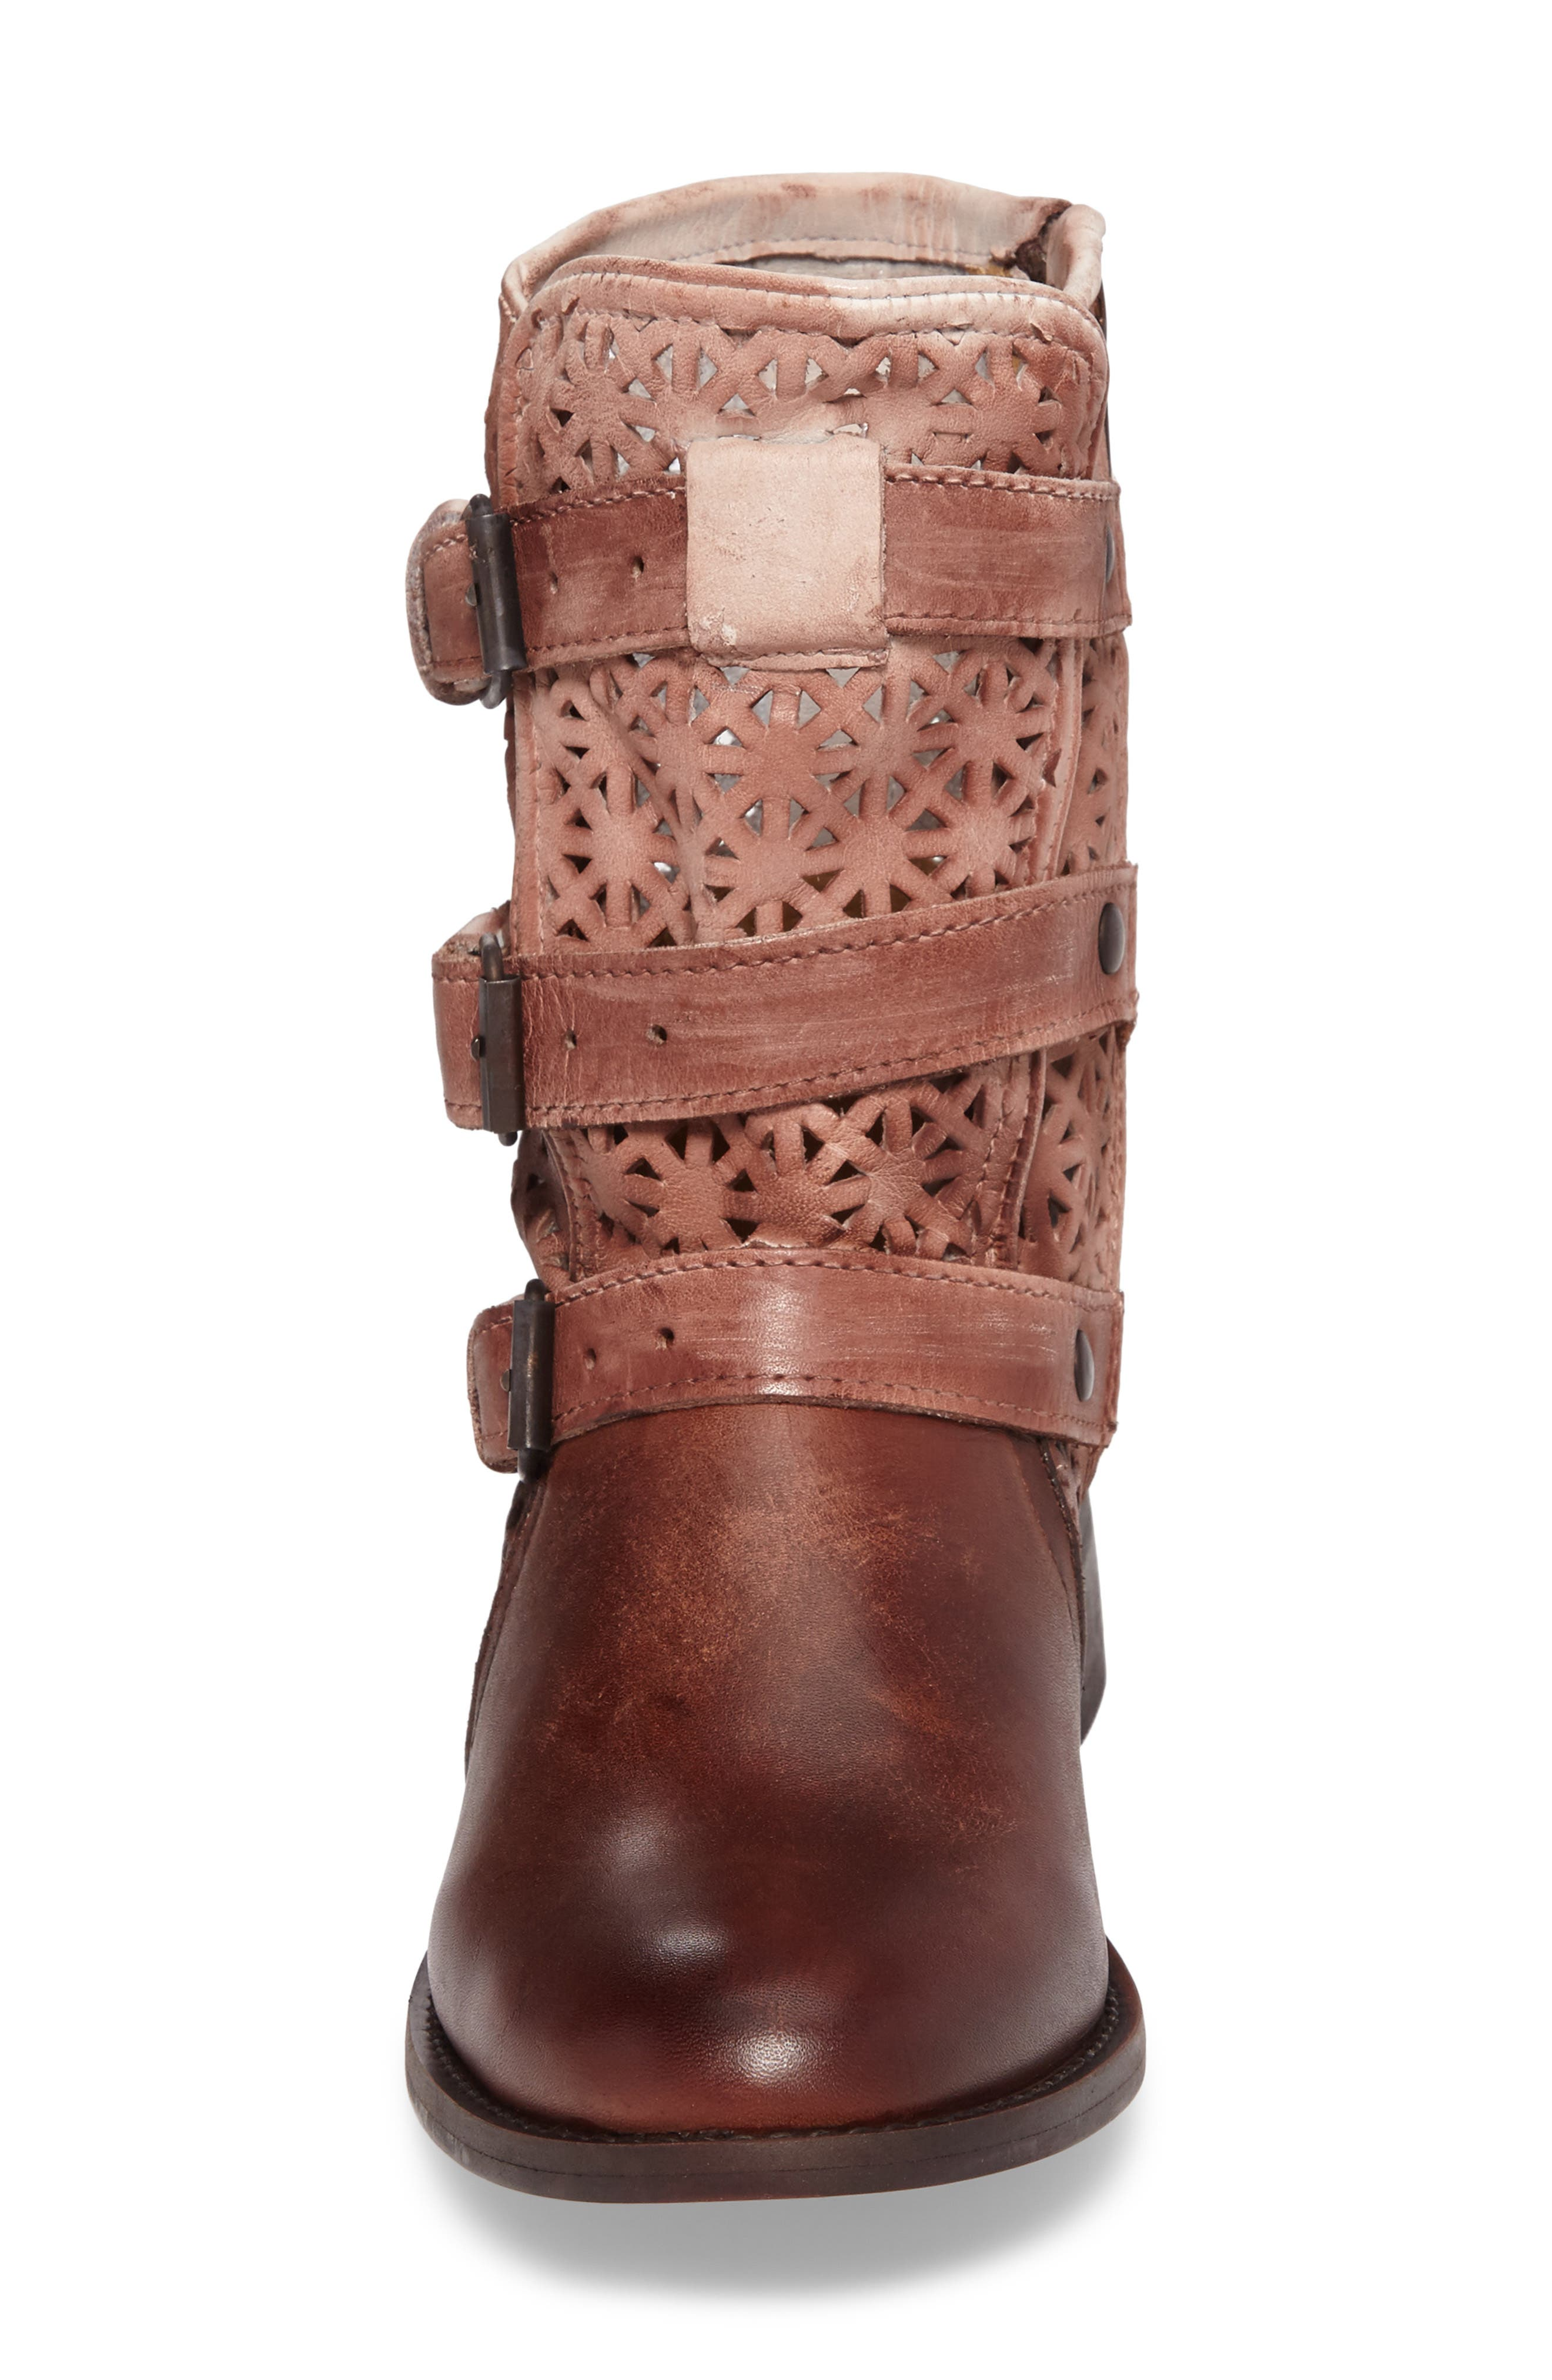 Annex Bootie,                             Alternate thumbnail 4, color,                             Brown Leather